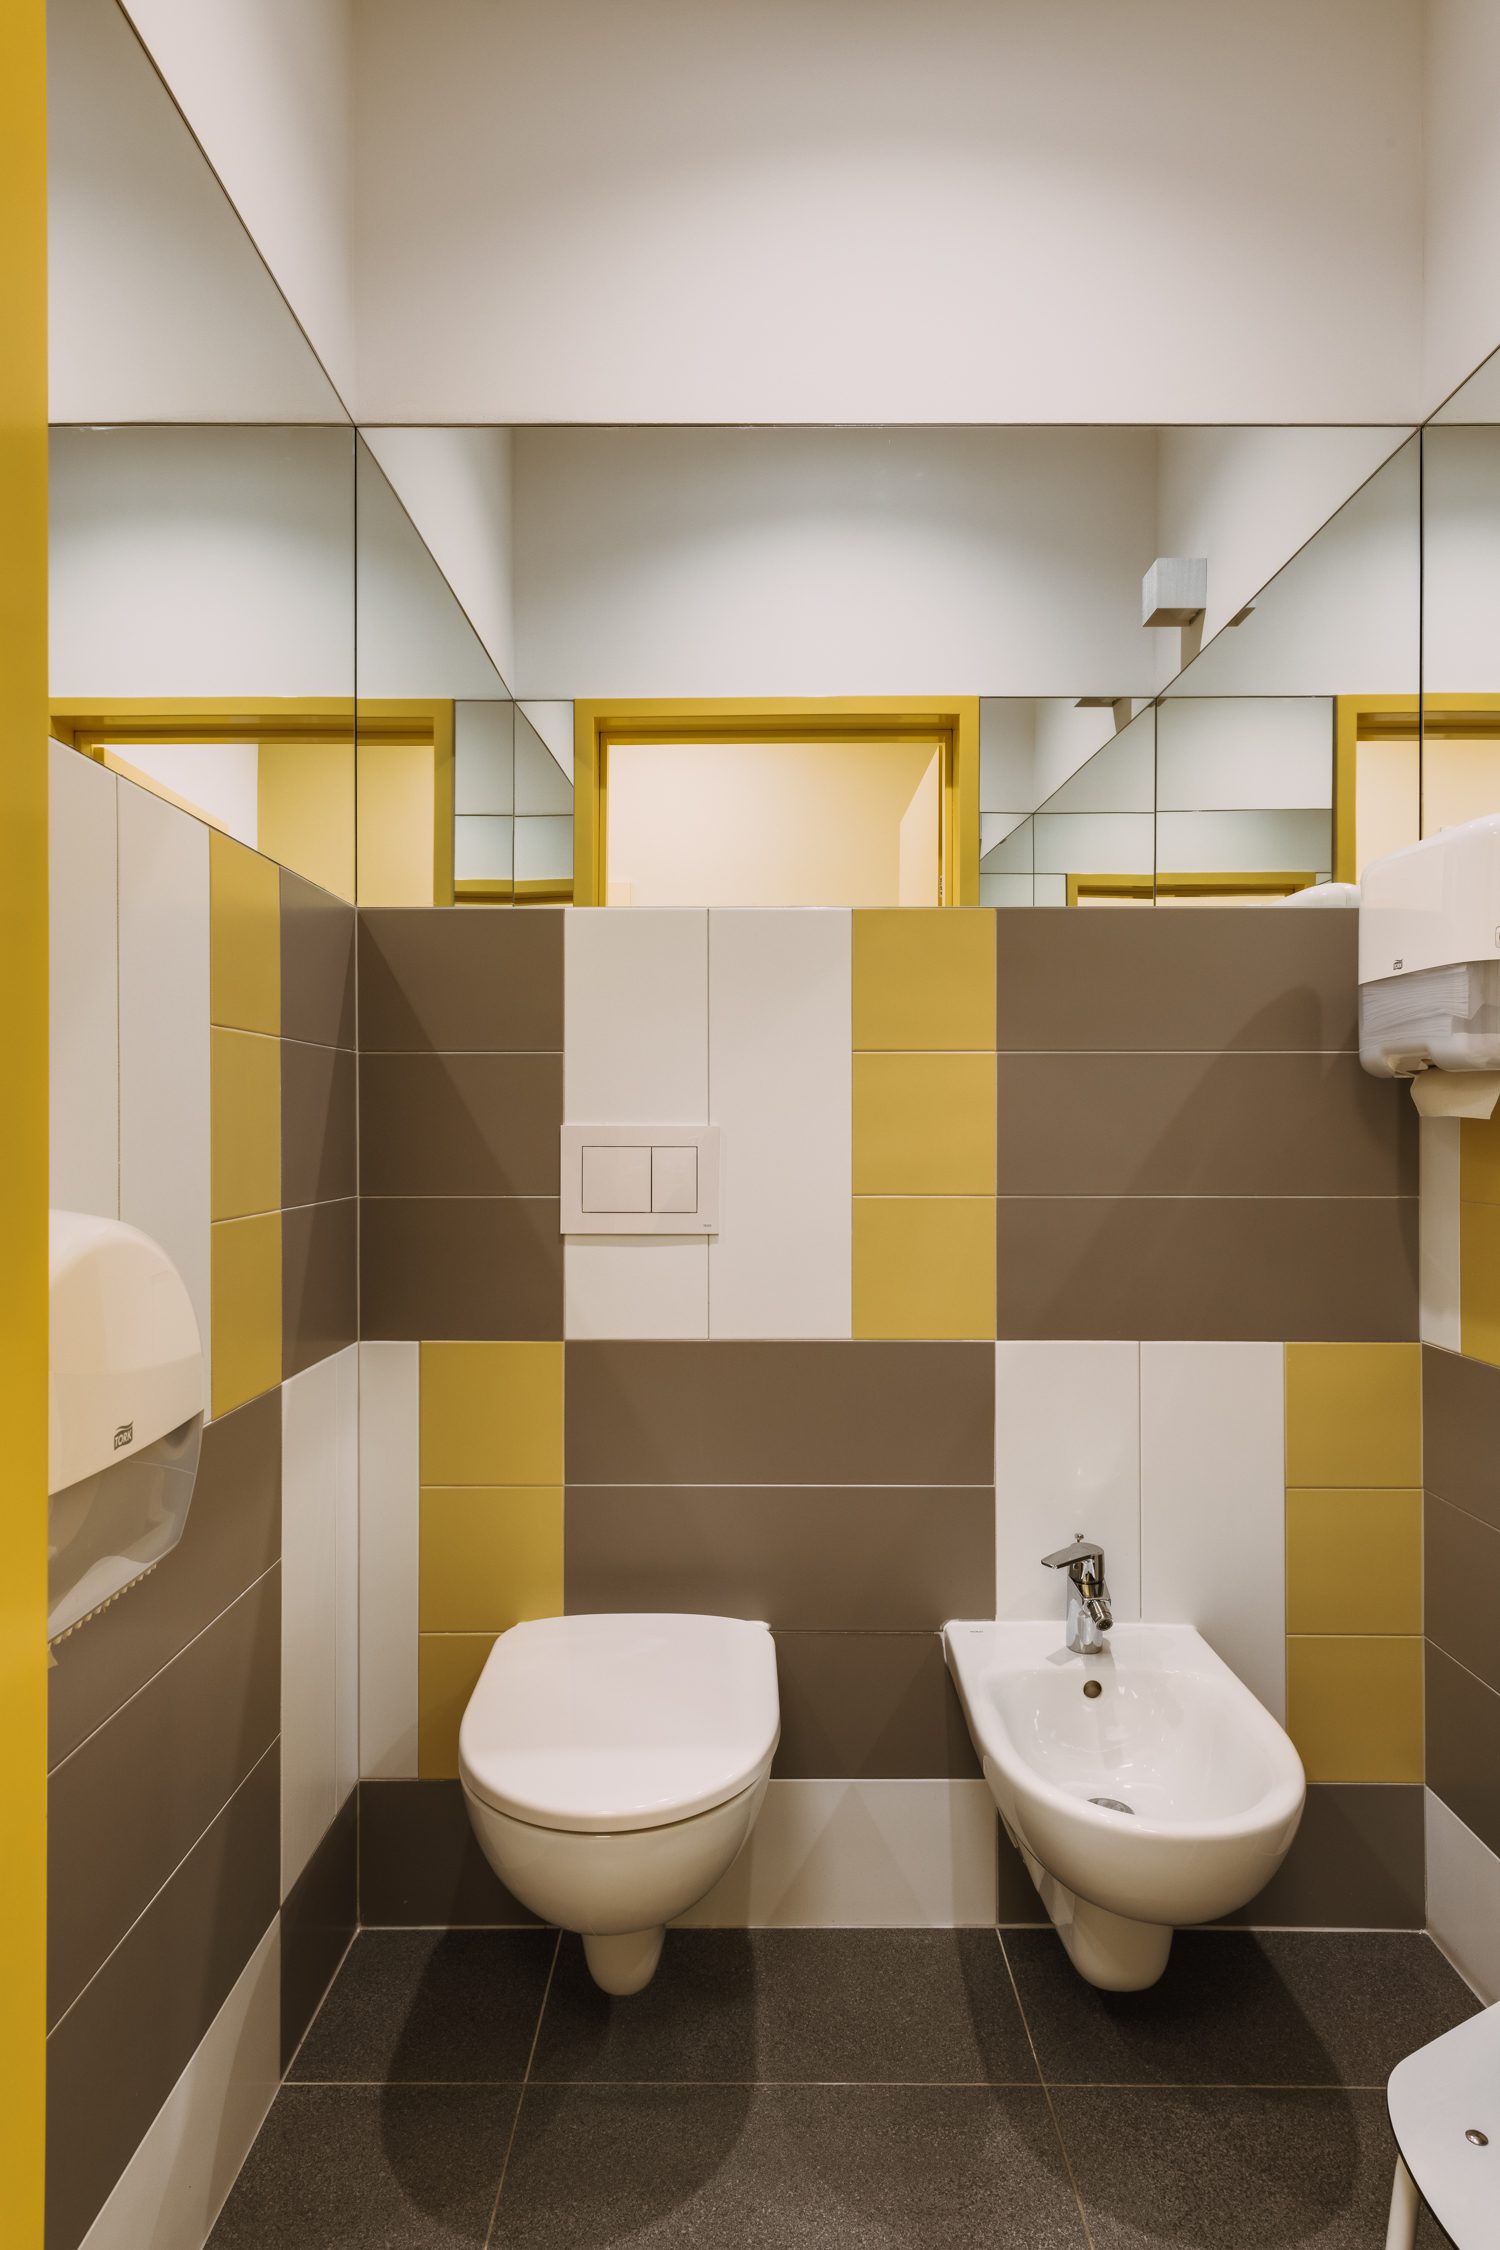 Wall and floor tiles in the bathrooms reiterate the gold-tone color palette.